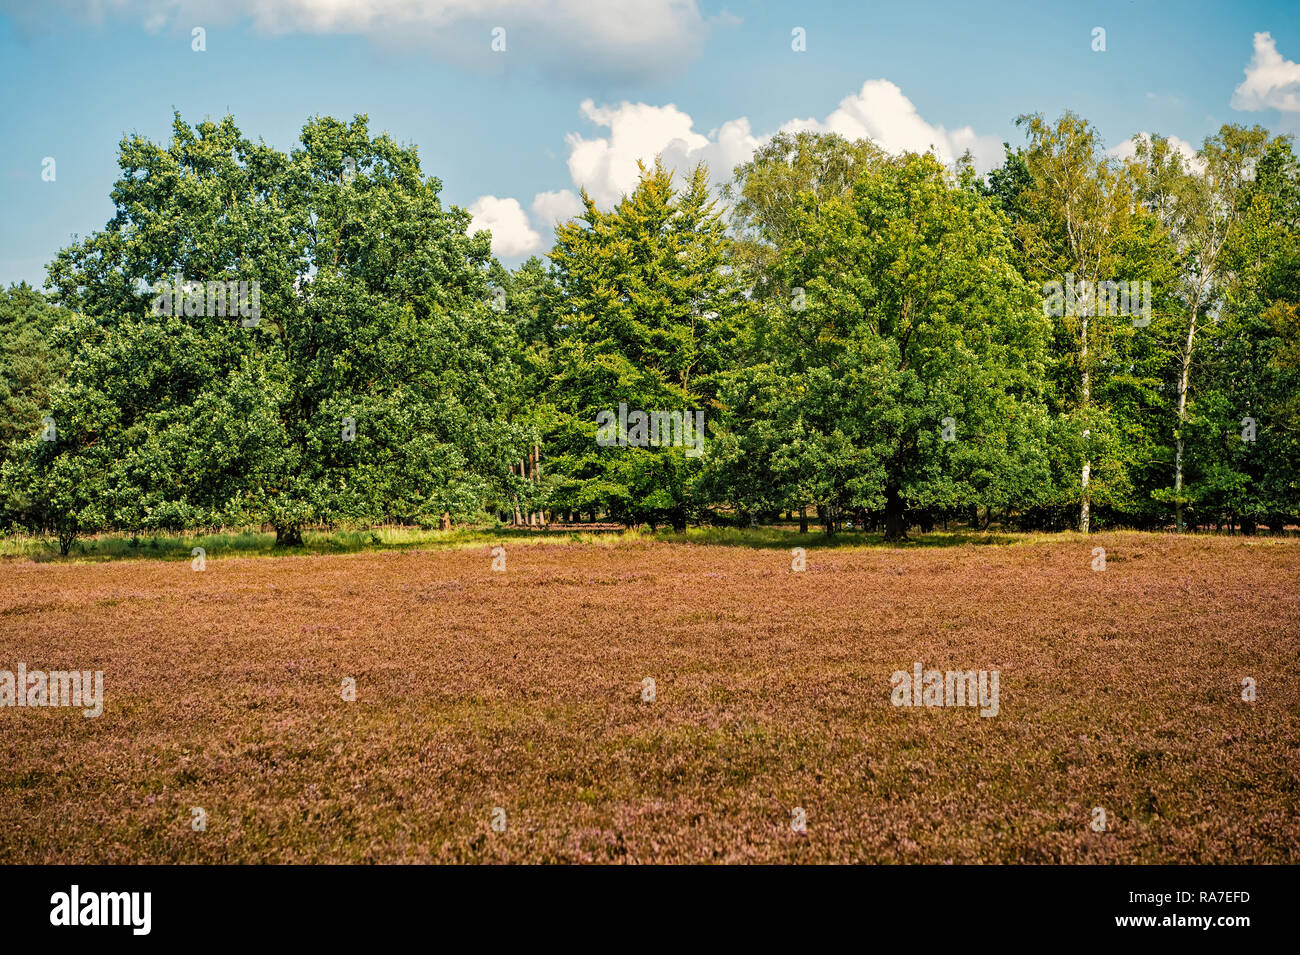 Heathland with flowering common heather Calluna vulgaris and an oak in the Lueneburg Heath Lueneburger Heide in Lower Saxony, Germany. Autumn field and meadow concept Stock Photo